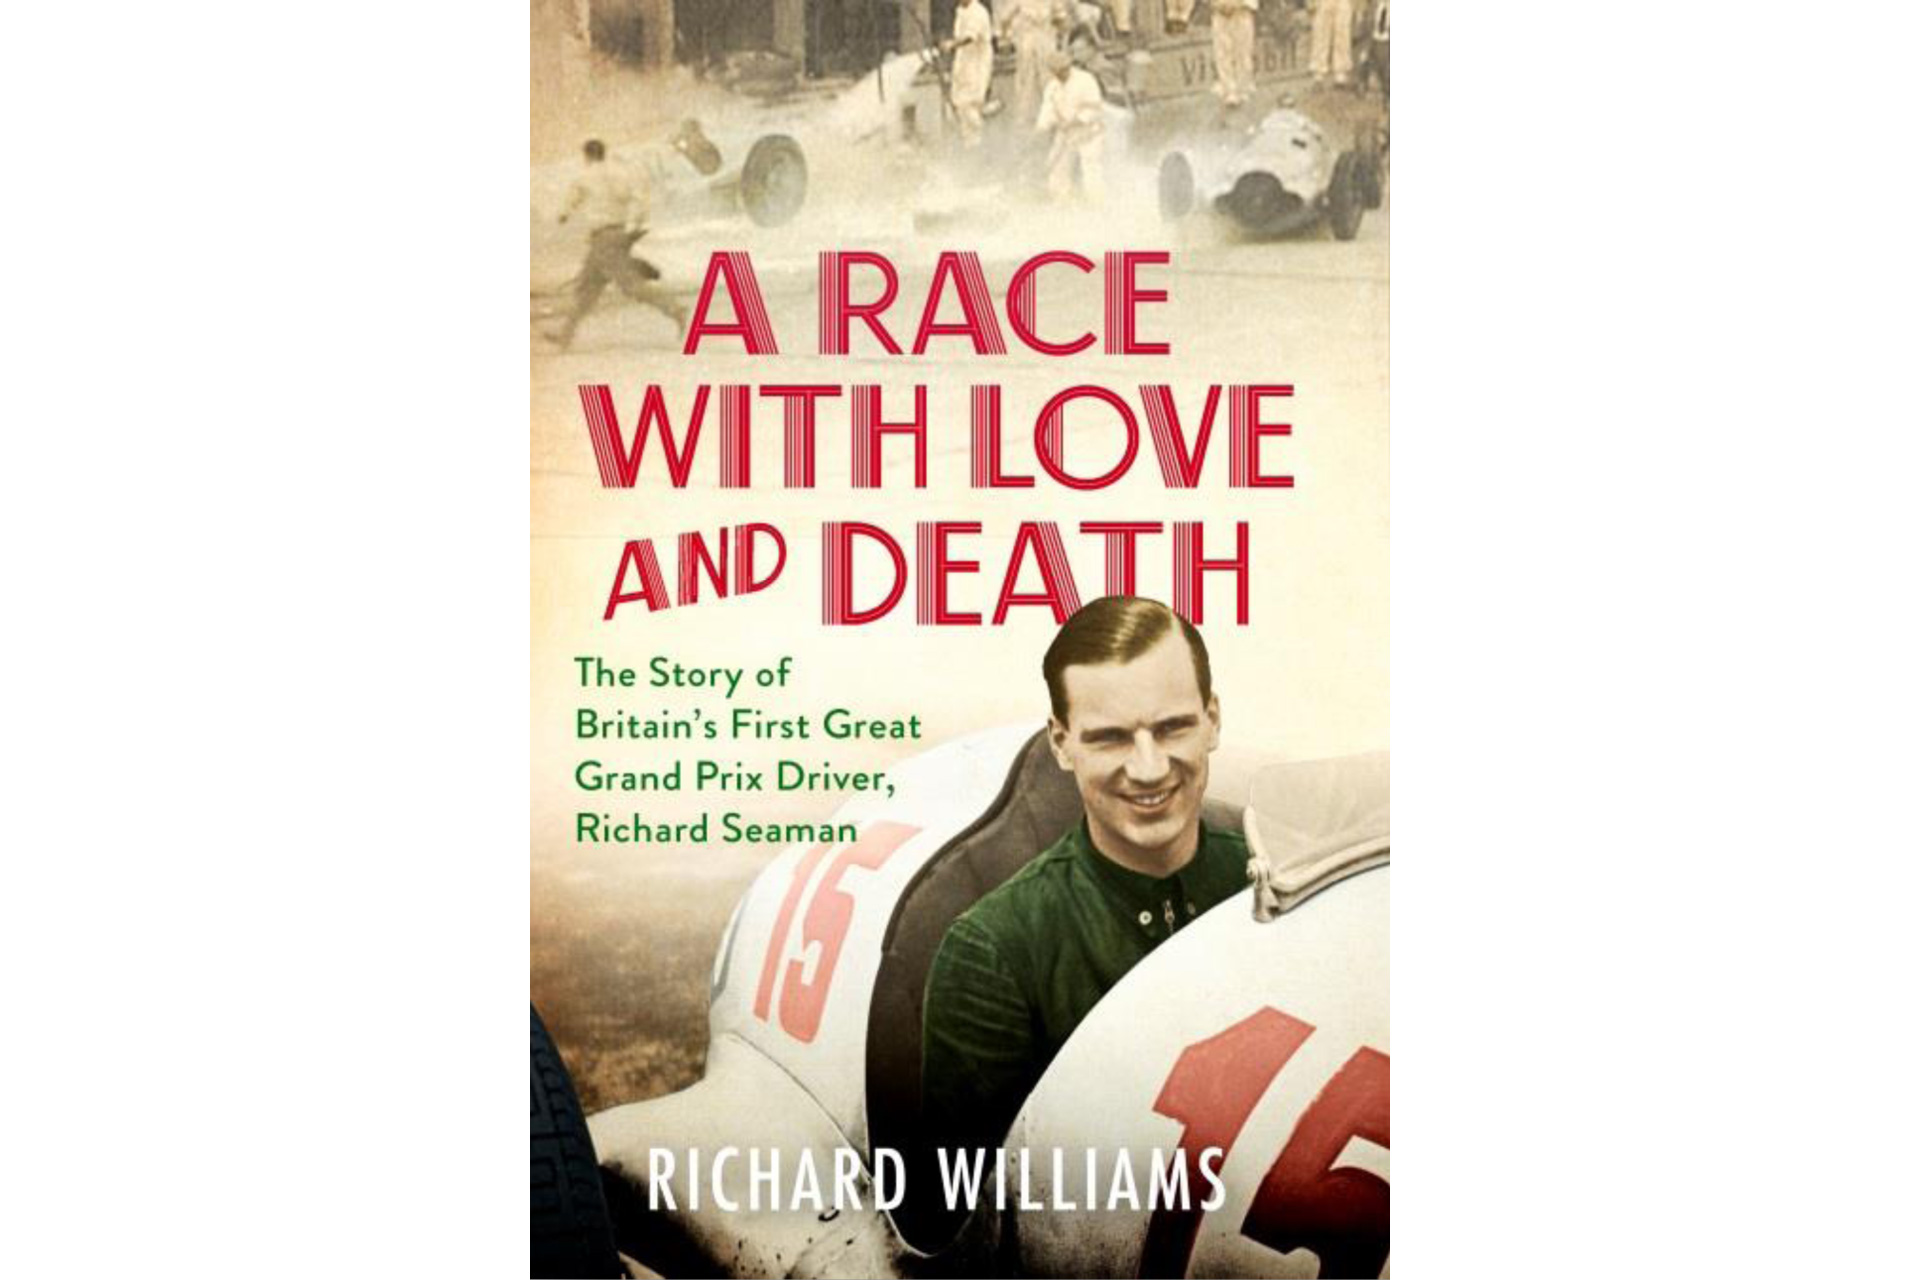 A Race With Love and Death - Richard Seaman biography